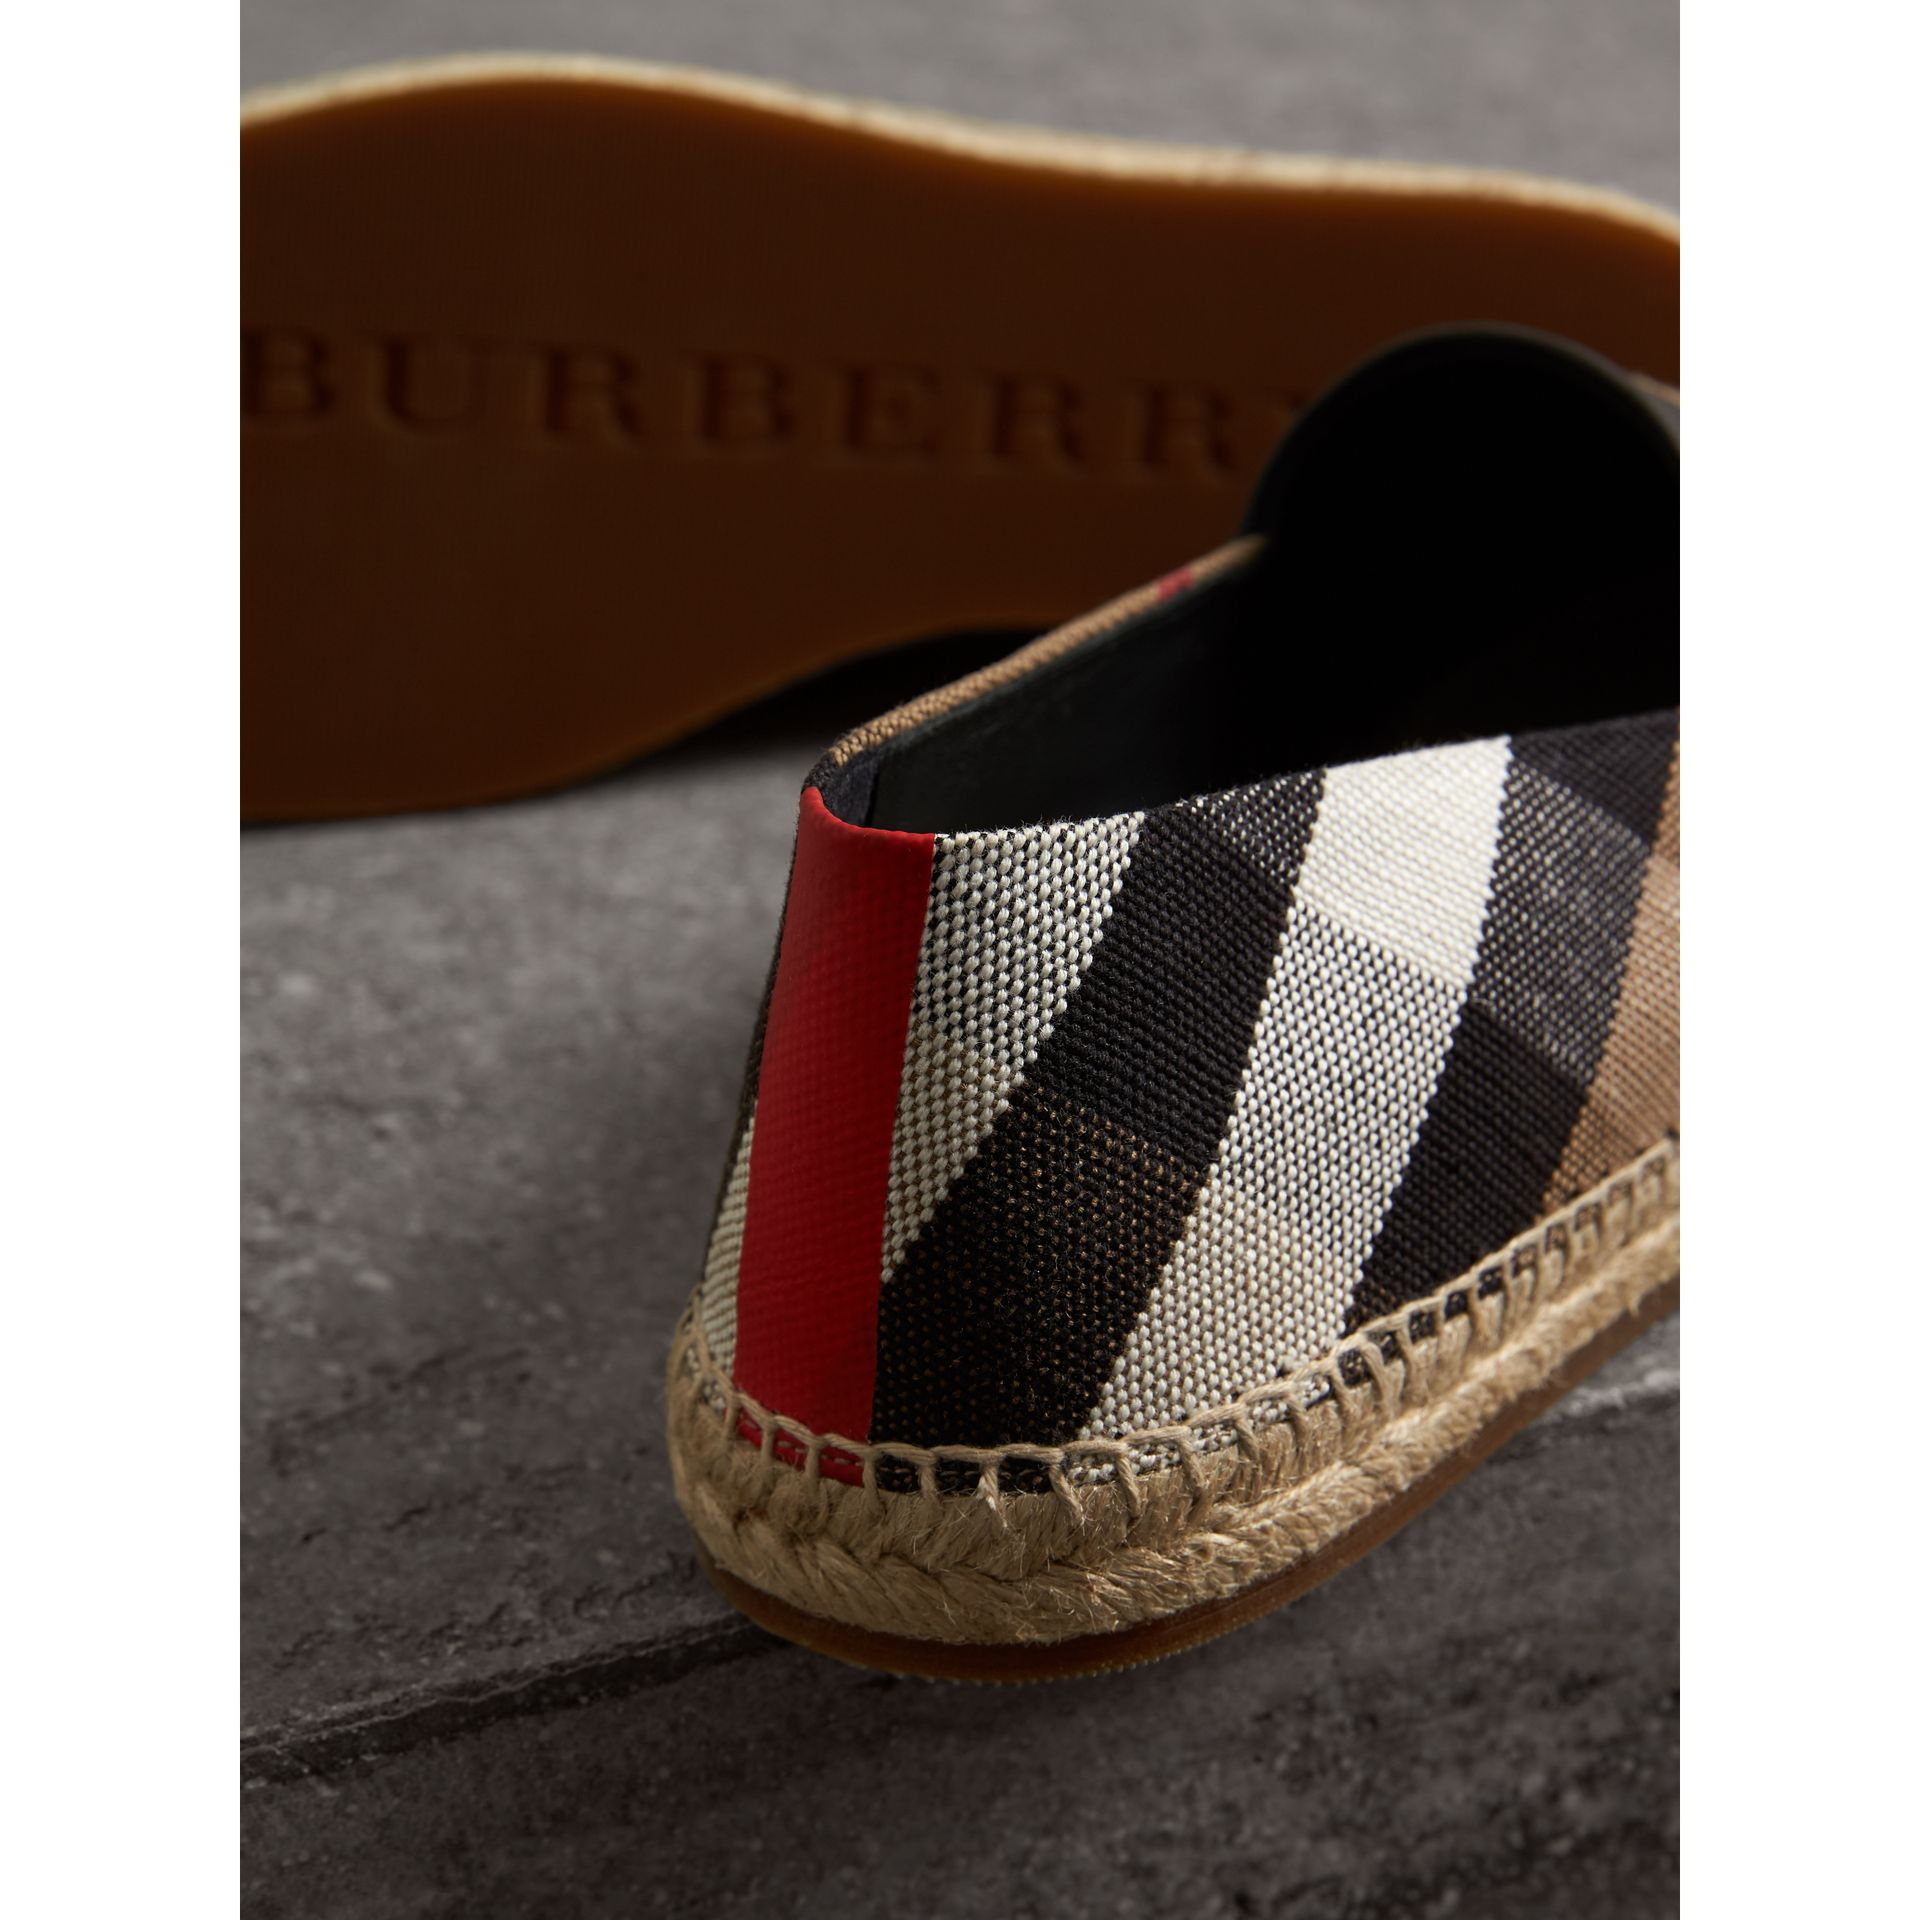 Check Cotton Canvas Seam-sealed Espadrilles in Classic - Men | Burberry - gallery image 1